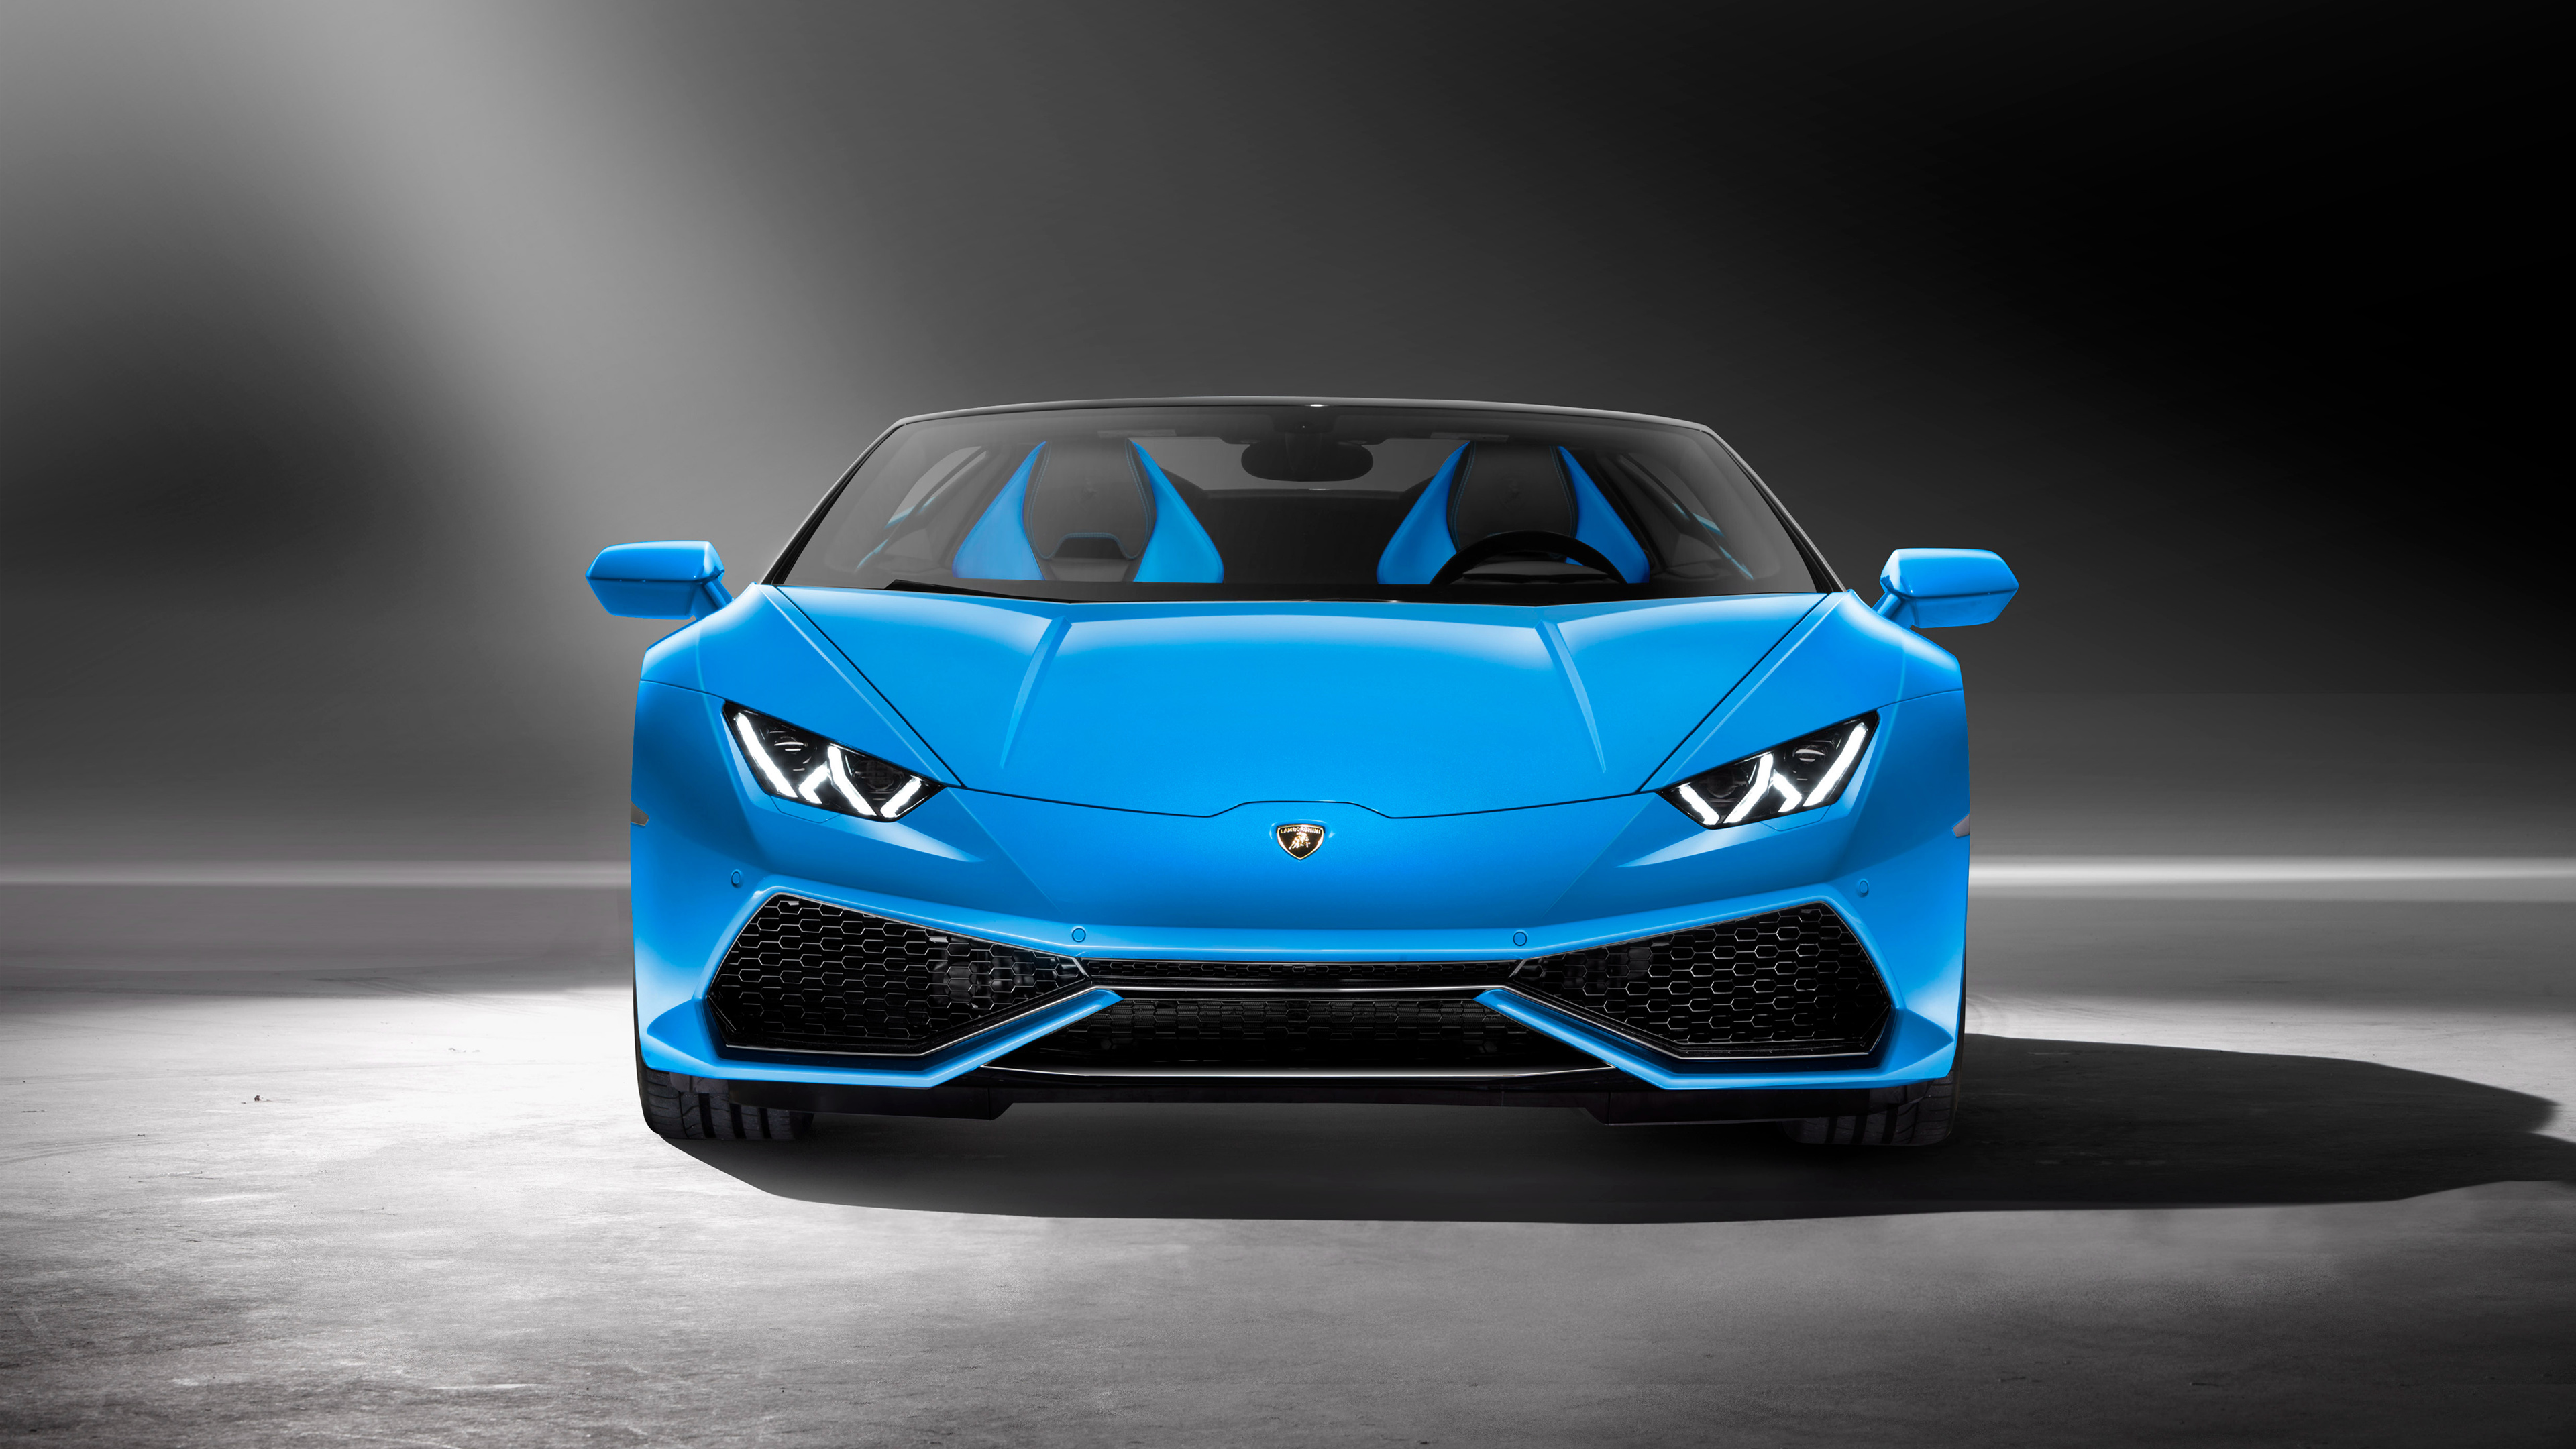 Lamborghini's Huracan Spyder launched in India for Rs 3.89 crores - Front Side